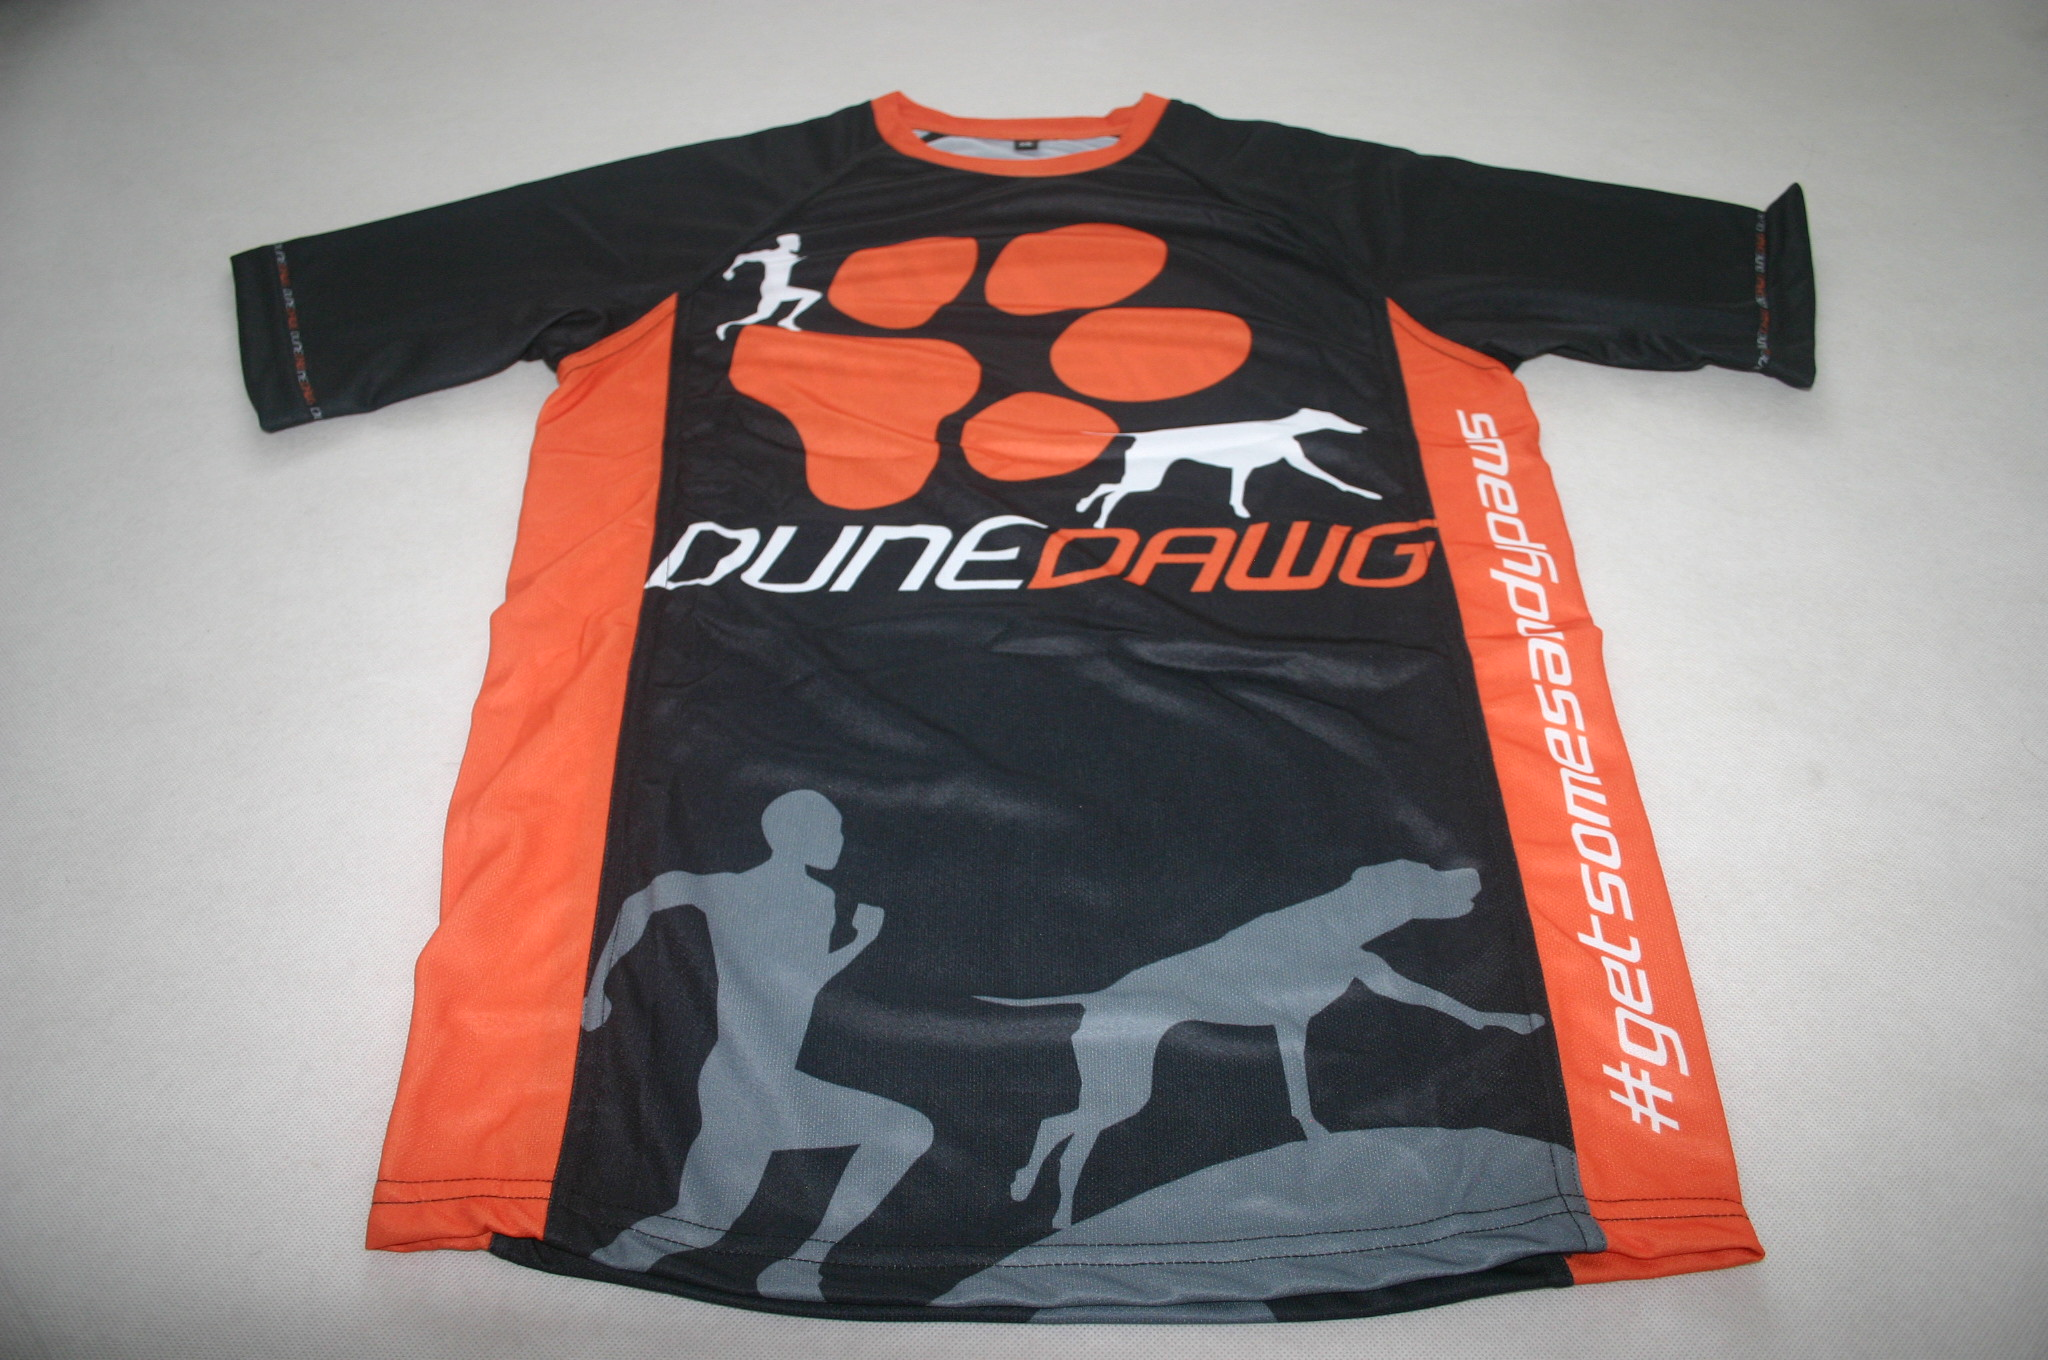 Dune Dawg Custom Running Shirts with Raglan Sleeves & Side Panels